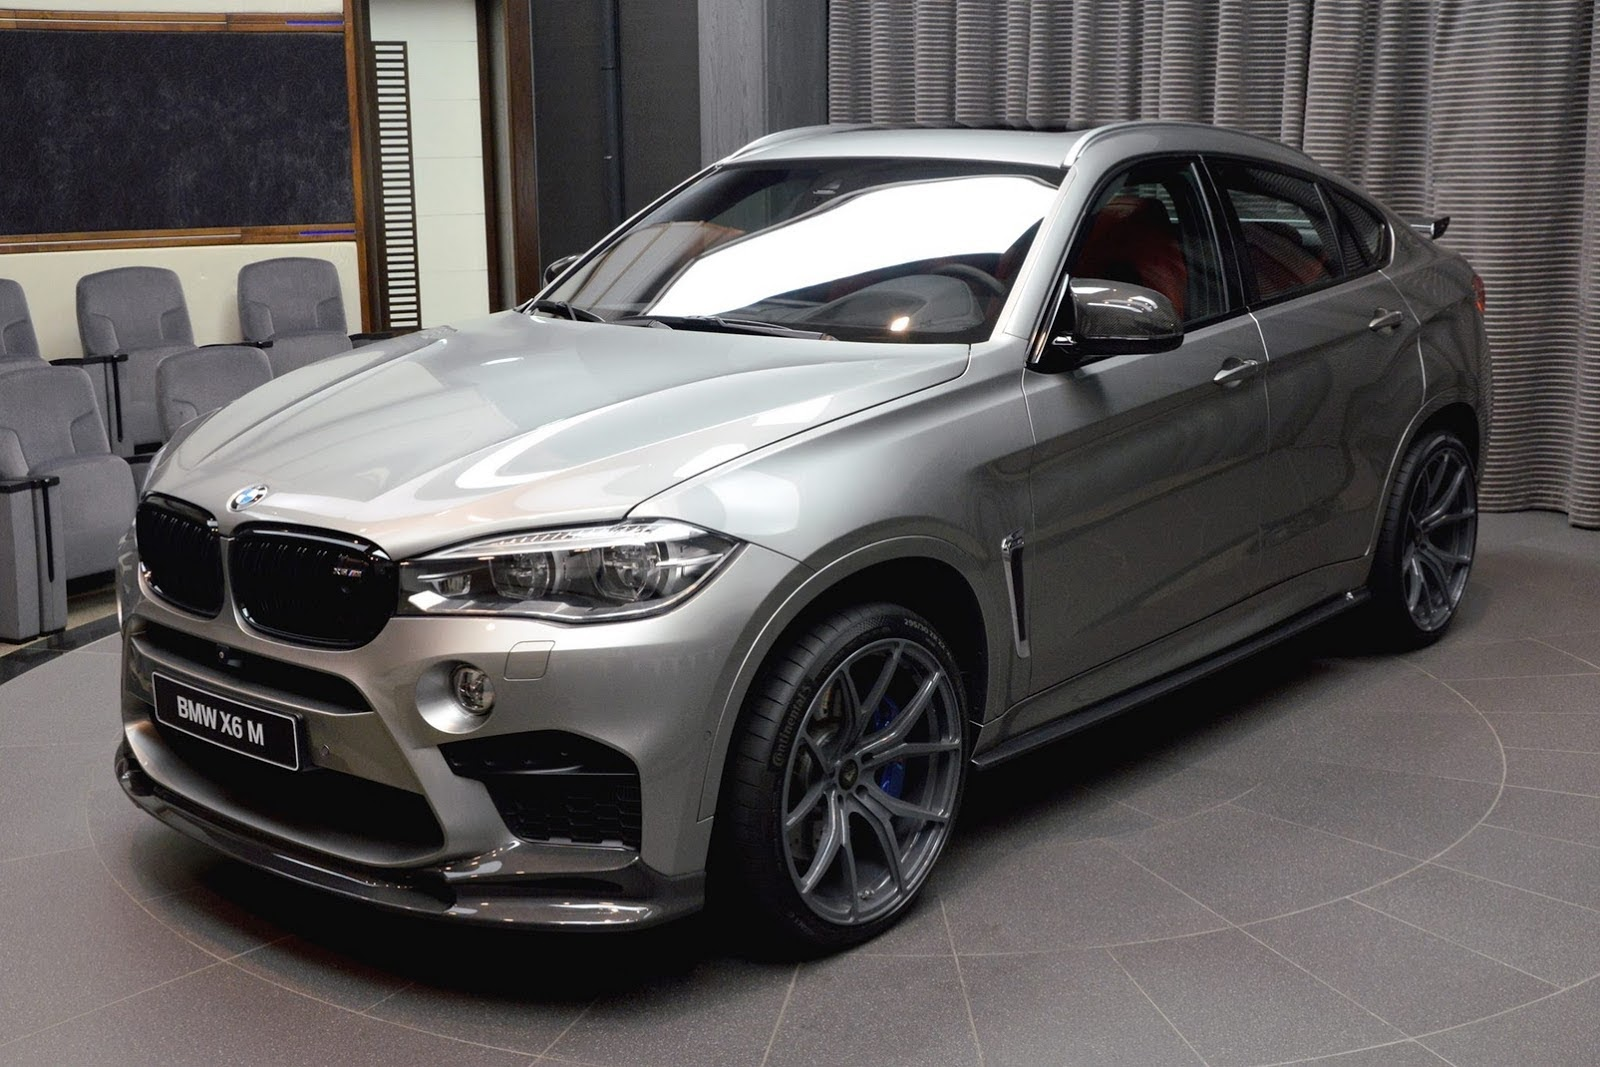 cars tuning music bmw x6 m. Black Bedroom Furniture Sets. Home Design Ideas